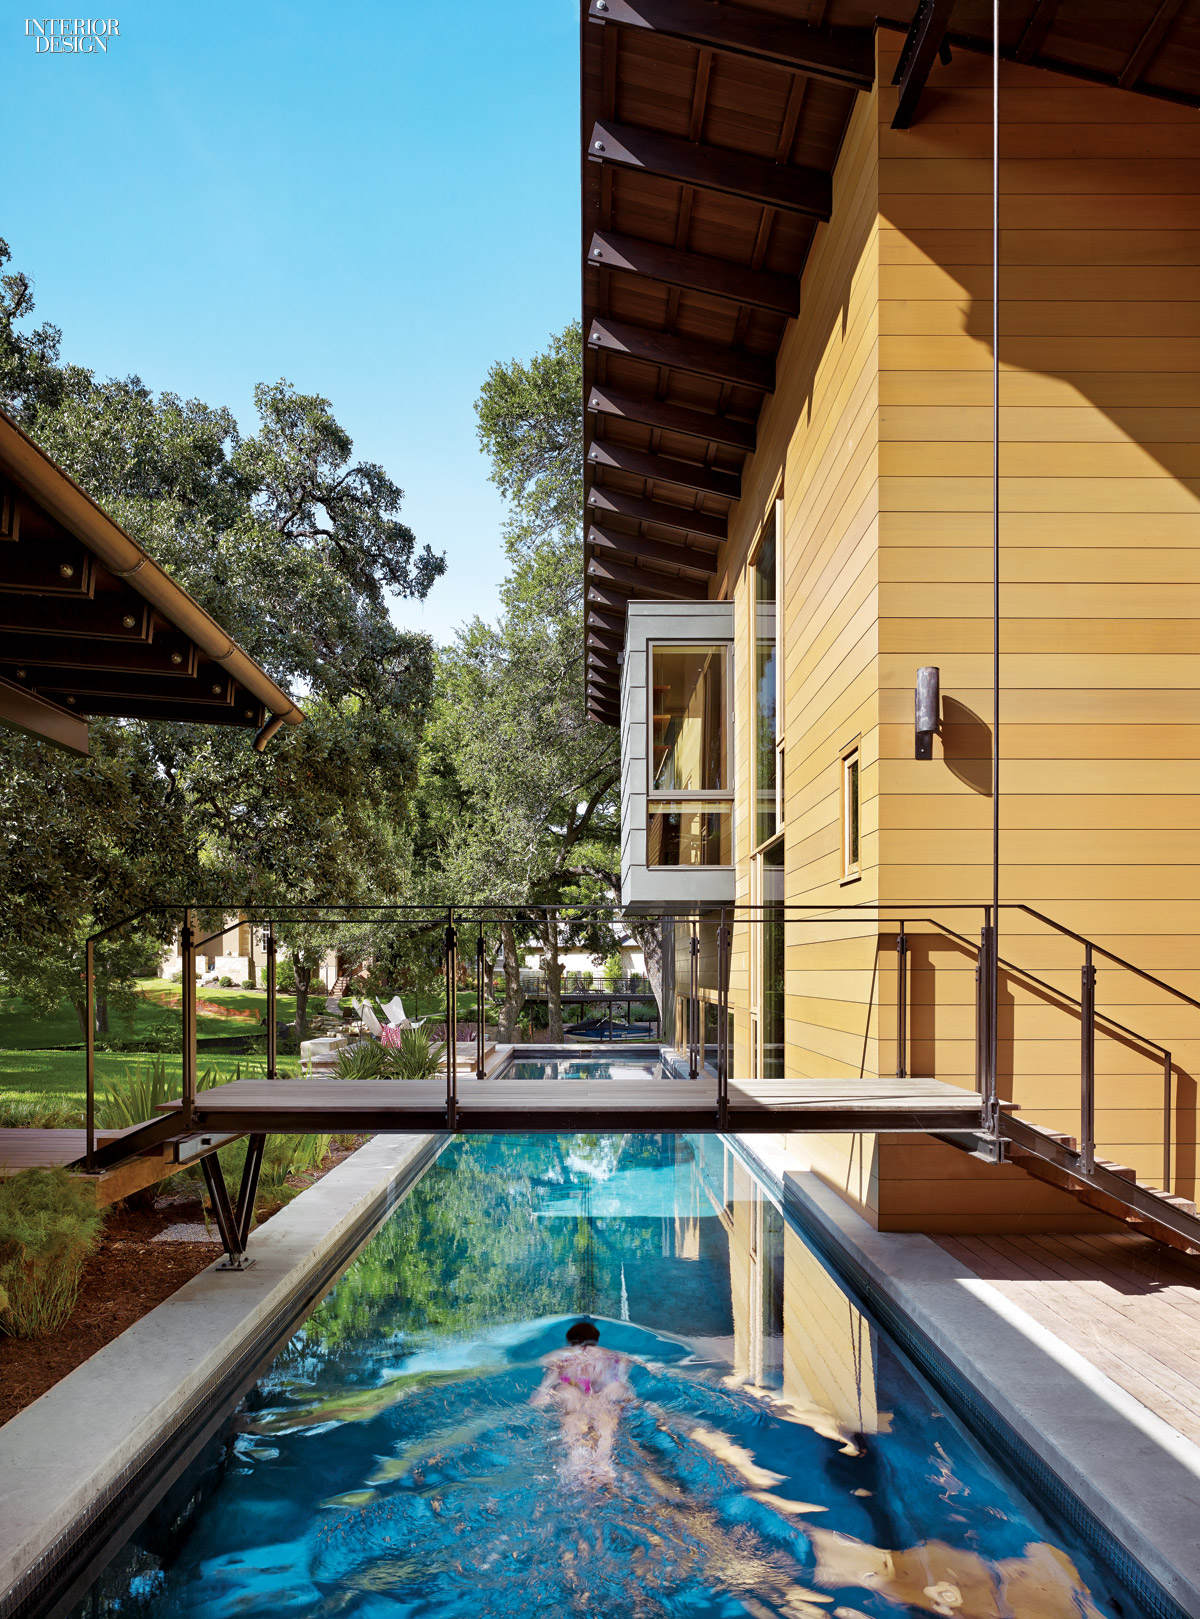 Austin city limits lake flato and abode transform texas for Pool design austin